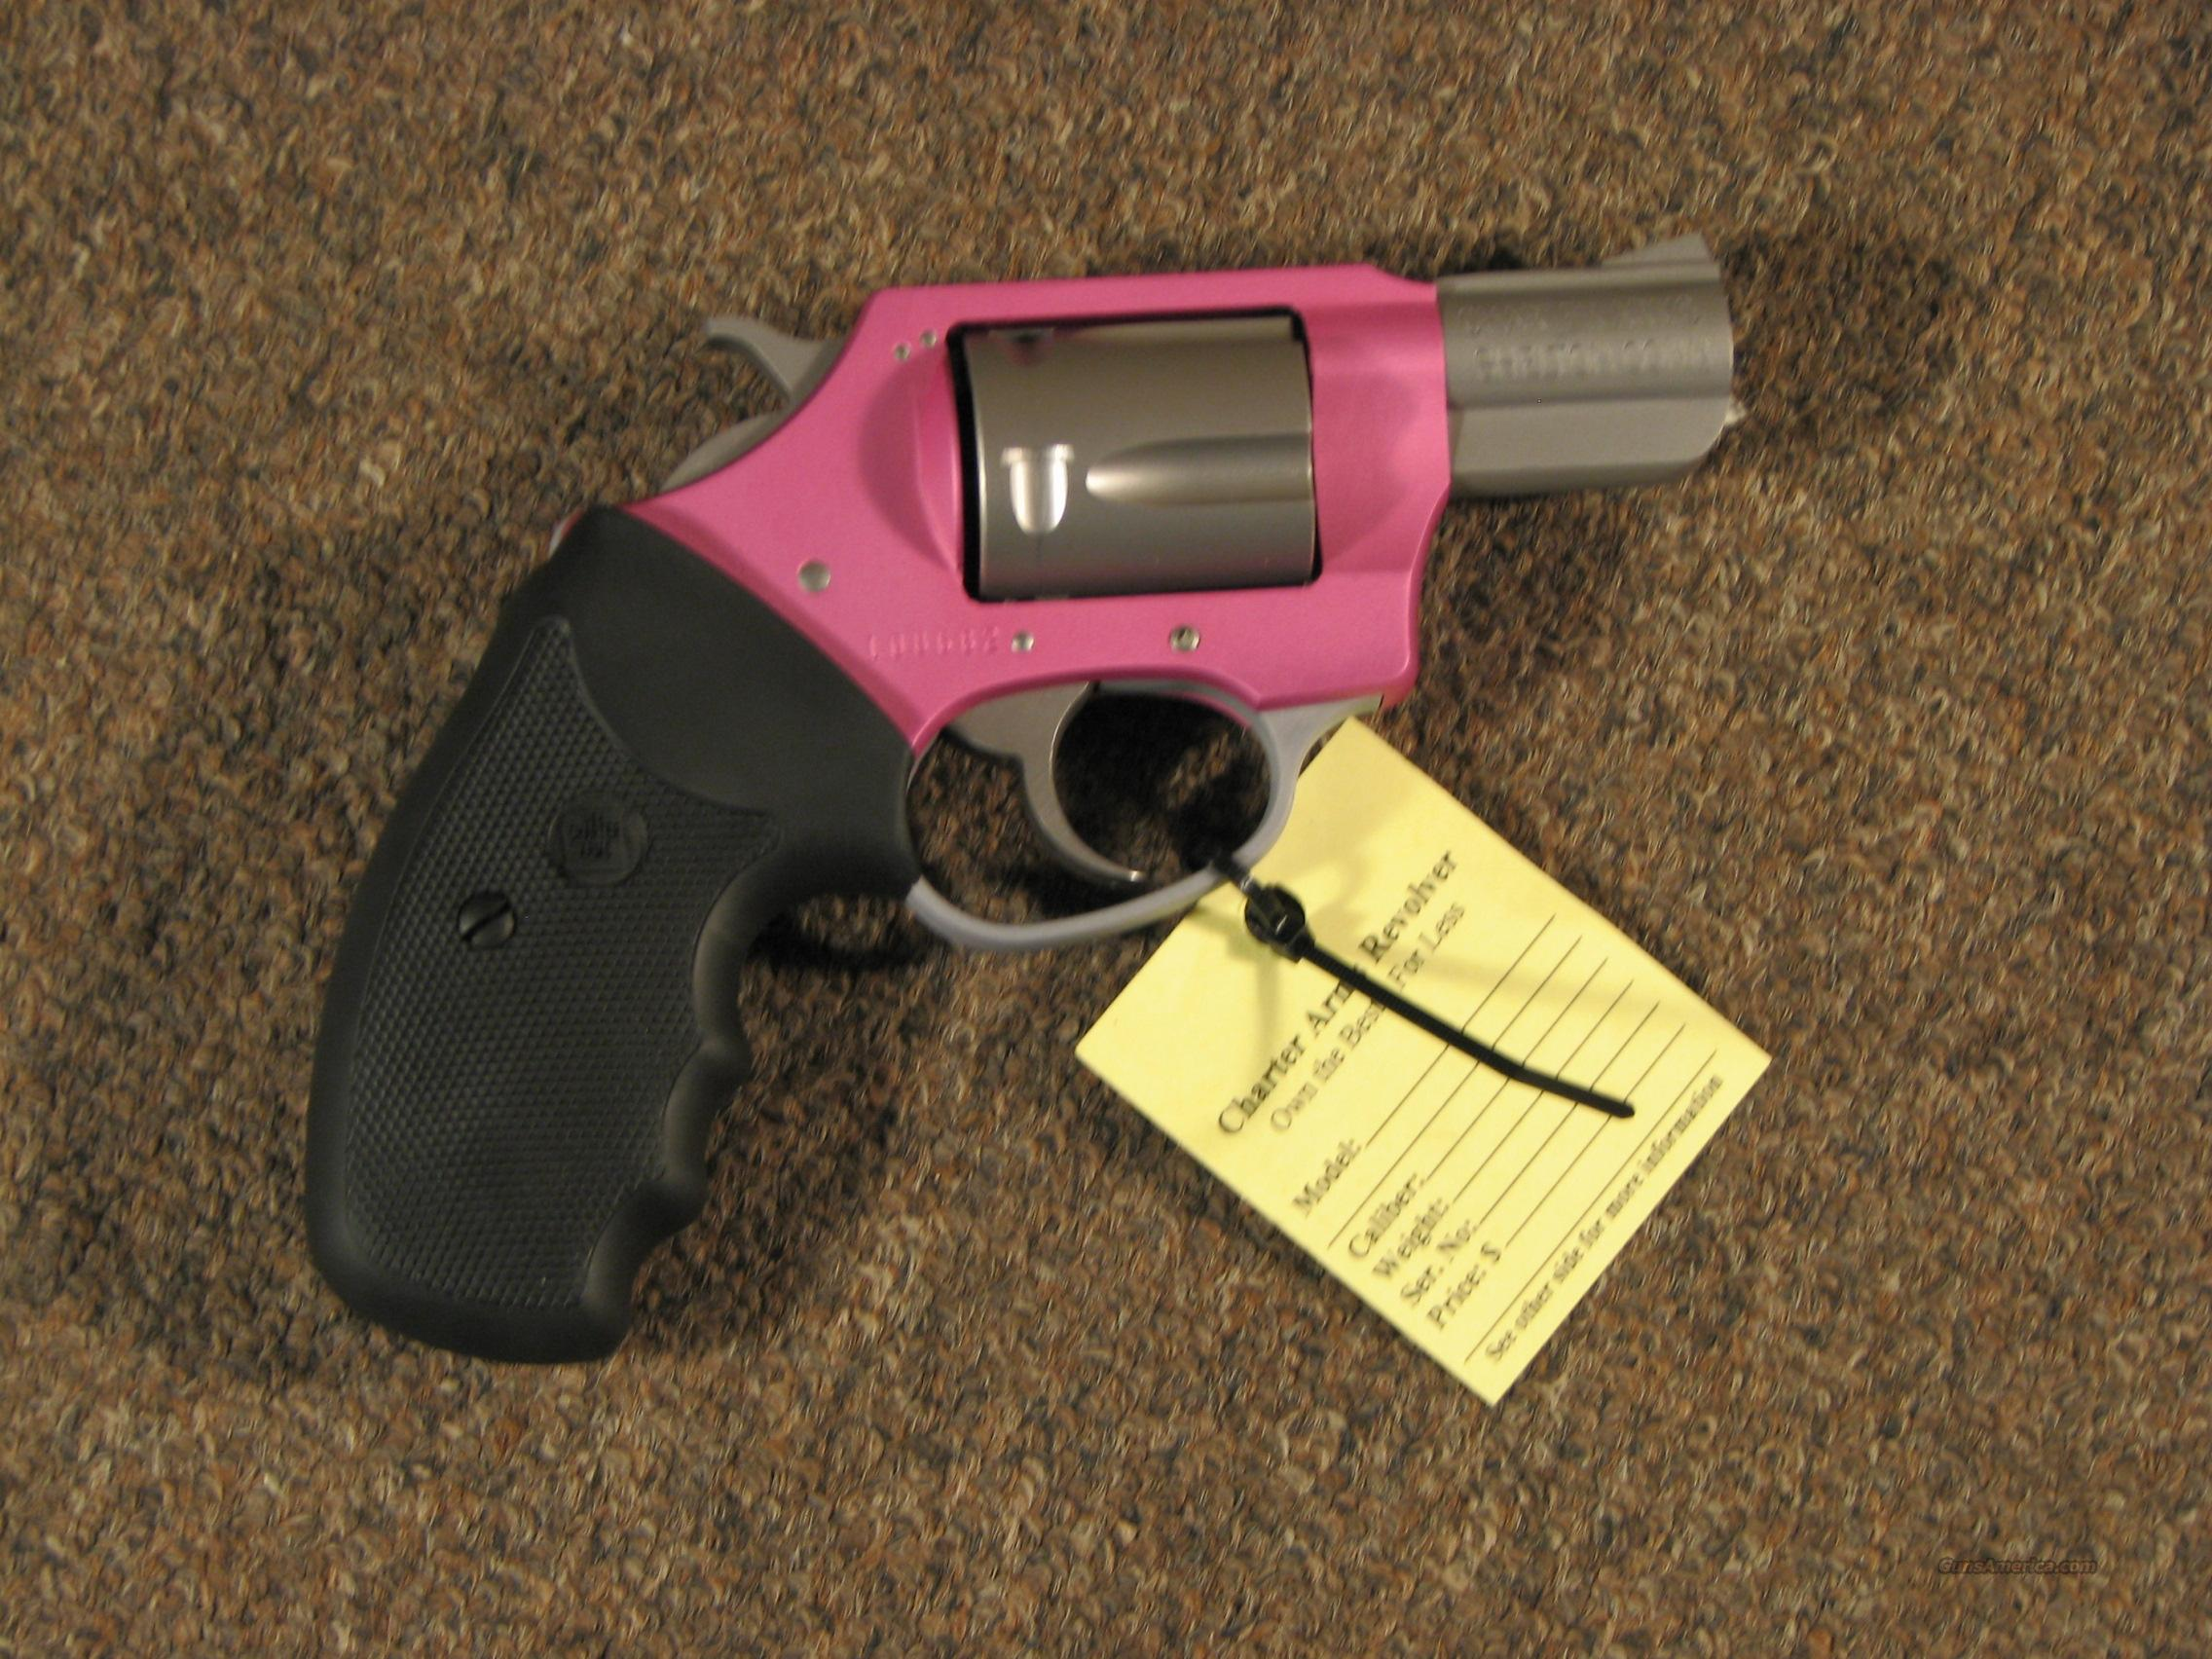 CHARTER ARMS PINK LADY .38 SPECIAL - NEW!  Guns > Pistols > Charter Arms Revolvers